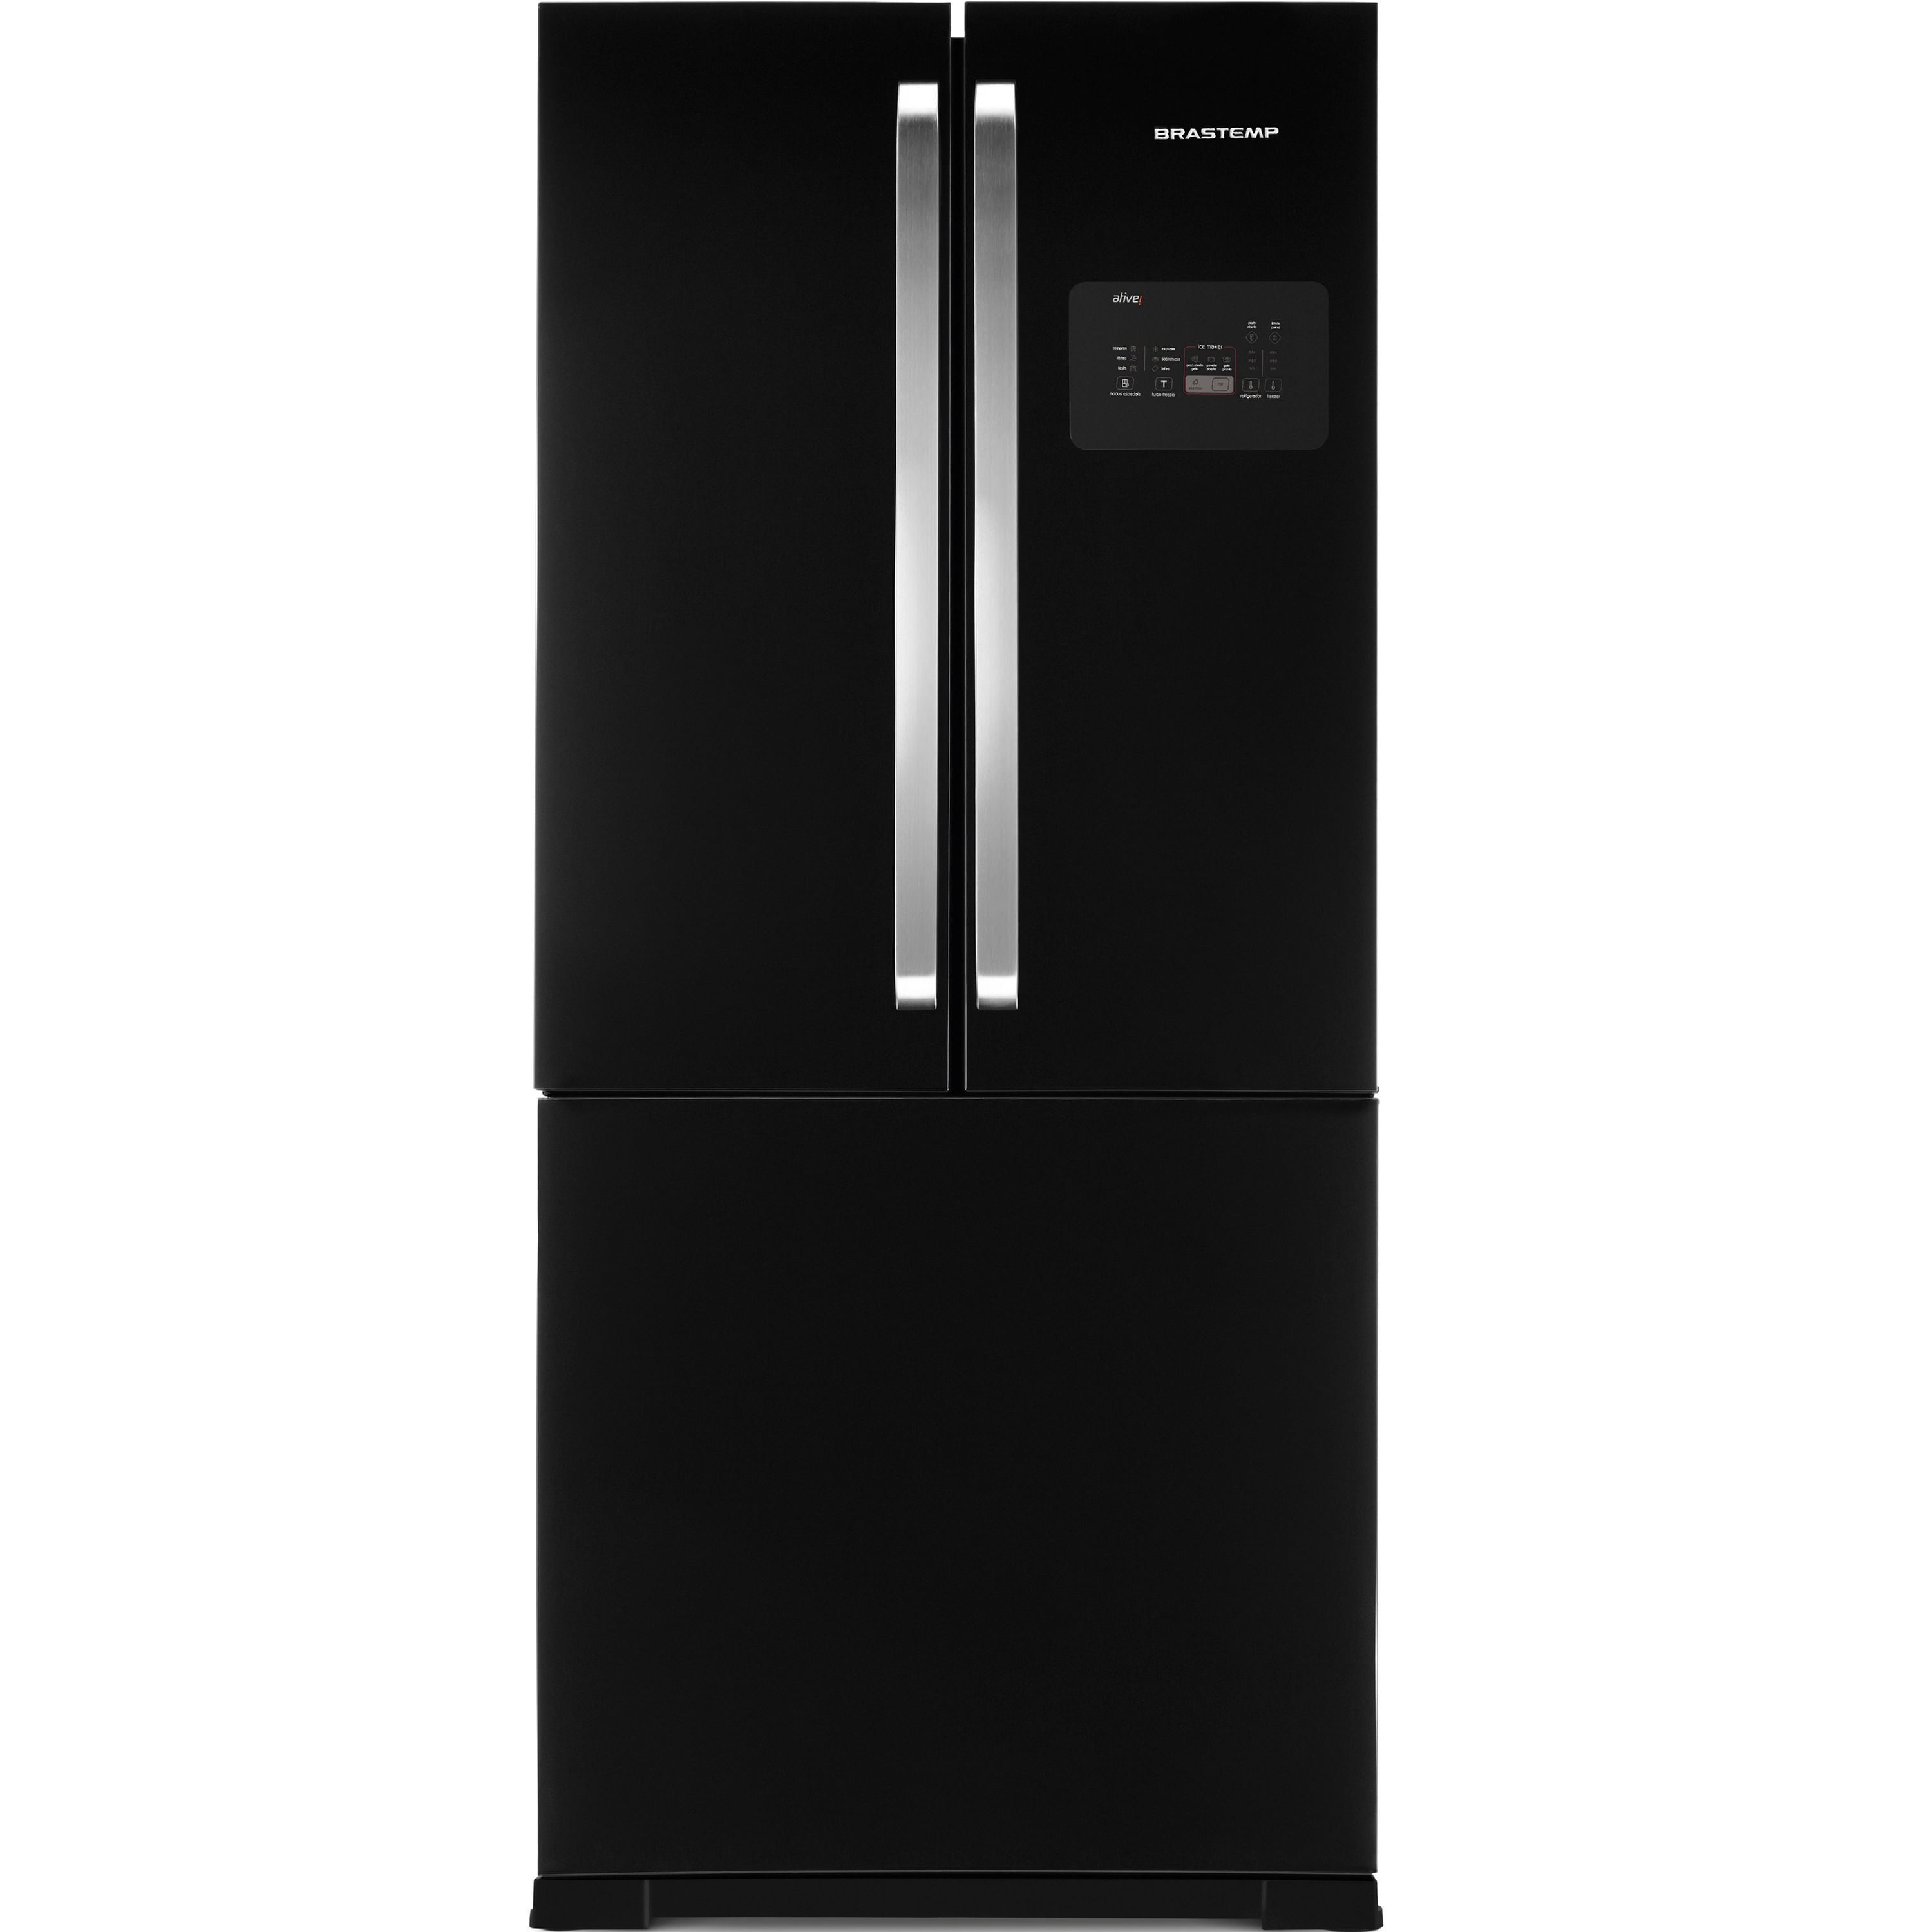 Geladeira Brastemp Frost Free Side Inverse 540 litros Preto com Ice Maker - Outlet - BRO80AE_OUT